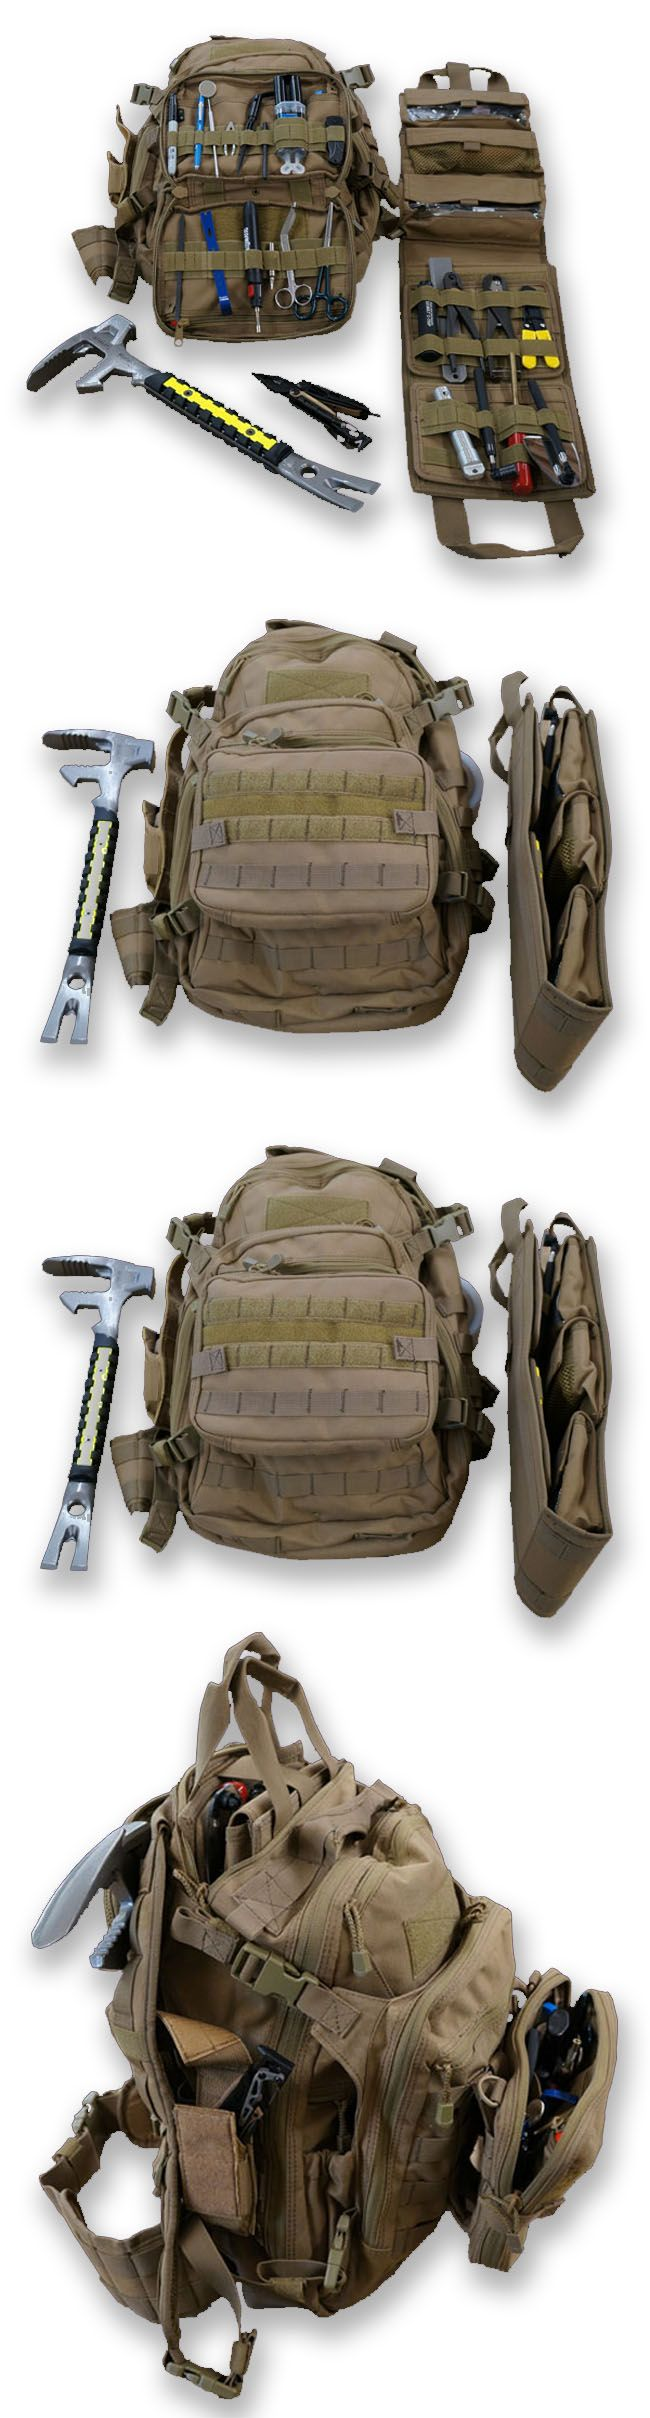 EOD GO BAG by Ideal Blasting I wouldn't put a pry bar in between my back and the pack + inserts are handy but heavy an d adding and extra small pouch on the front panel unbalance the whole thing. Non rigid tool-roll type instead of insert Pry bar on the